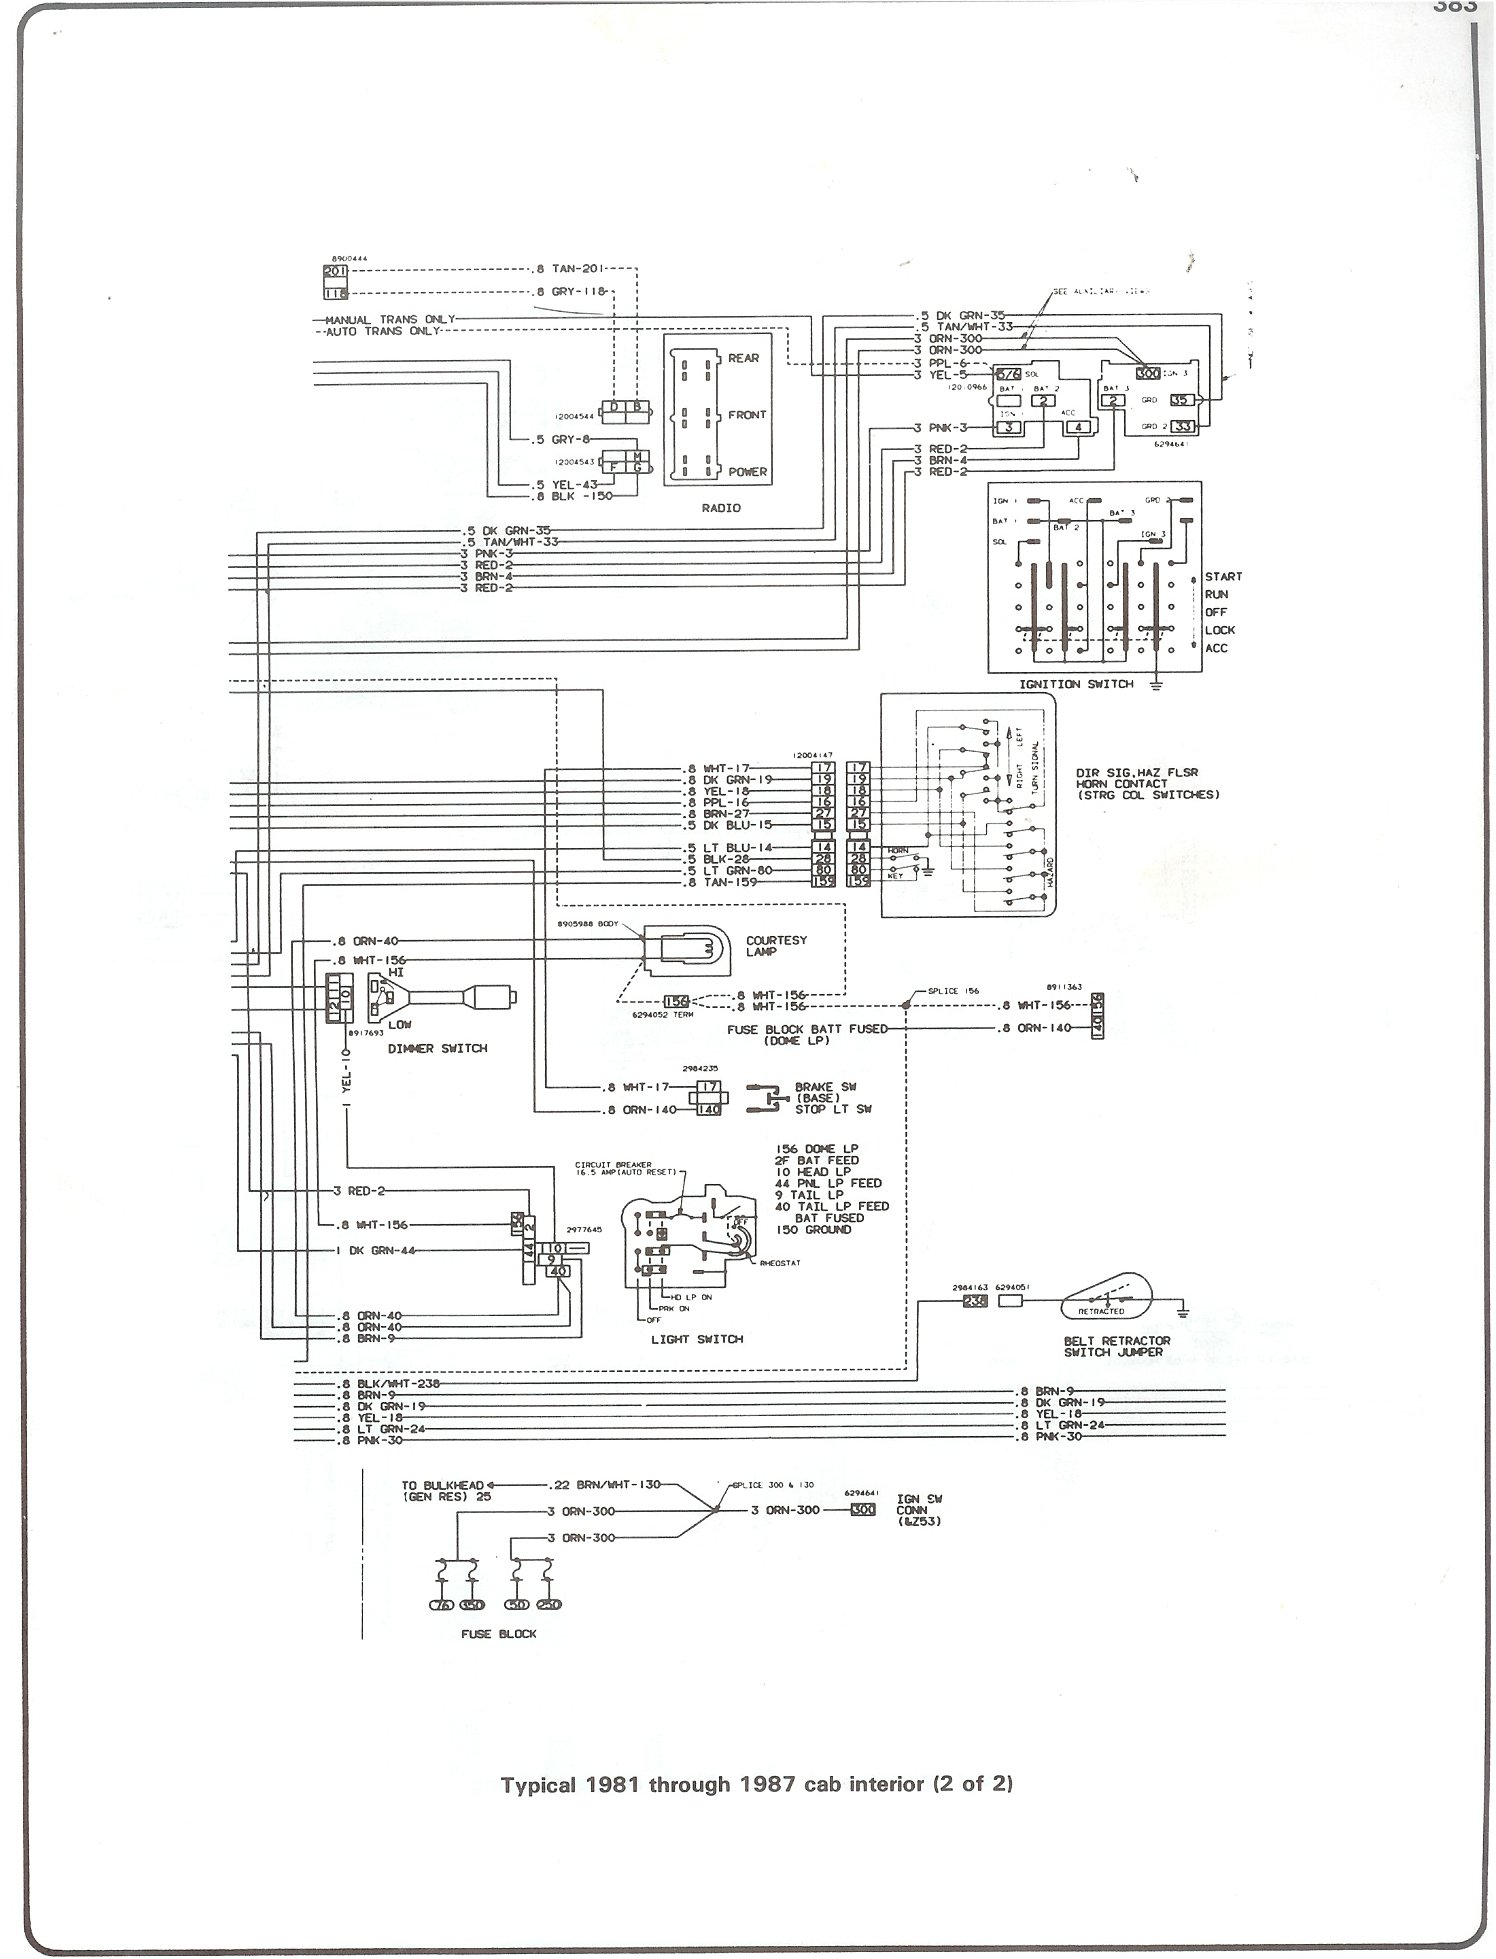 1987 Chevrolet C10 Wiring Diagram Another Blog About Ls1 For Complete 73 87 Diagrams